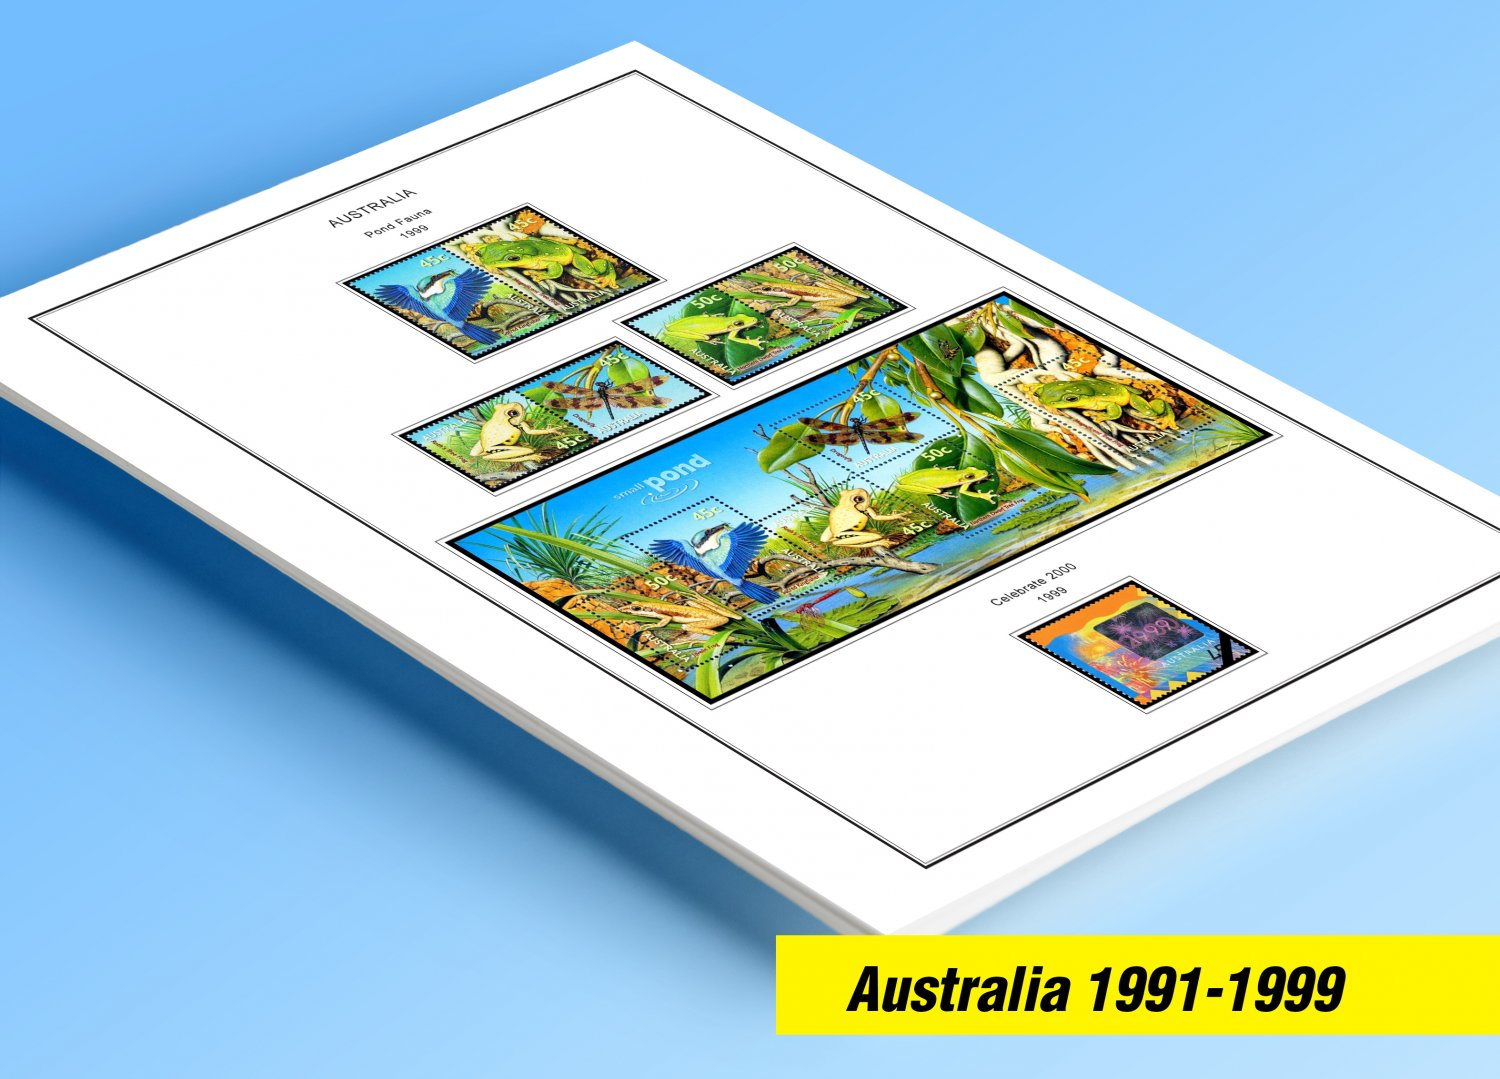 COLOR PRINTED AUSTRALIA 1991-1999 STAMP ALBUM PAGES (95 illustrated pages)